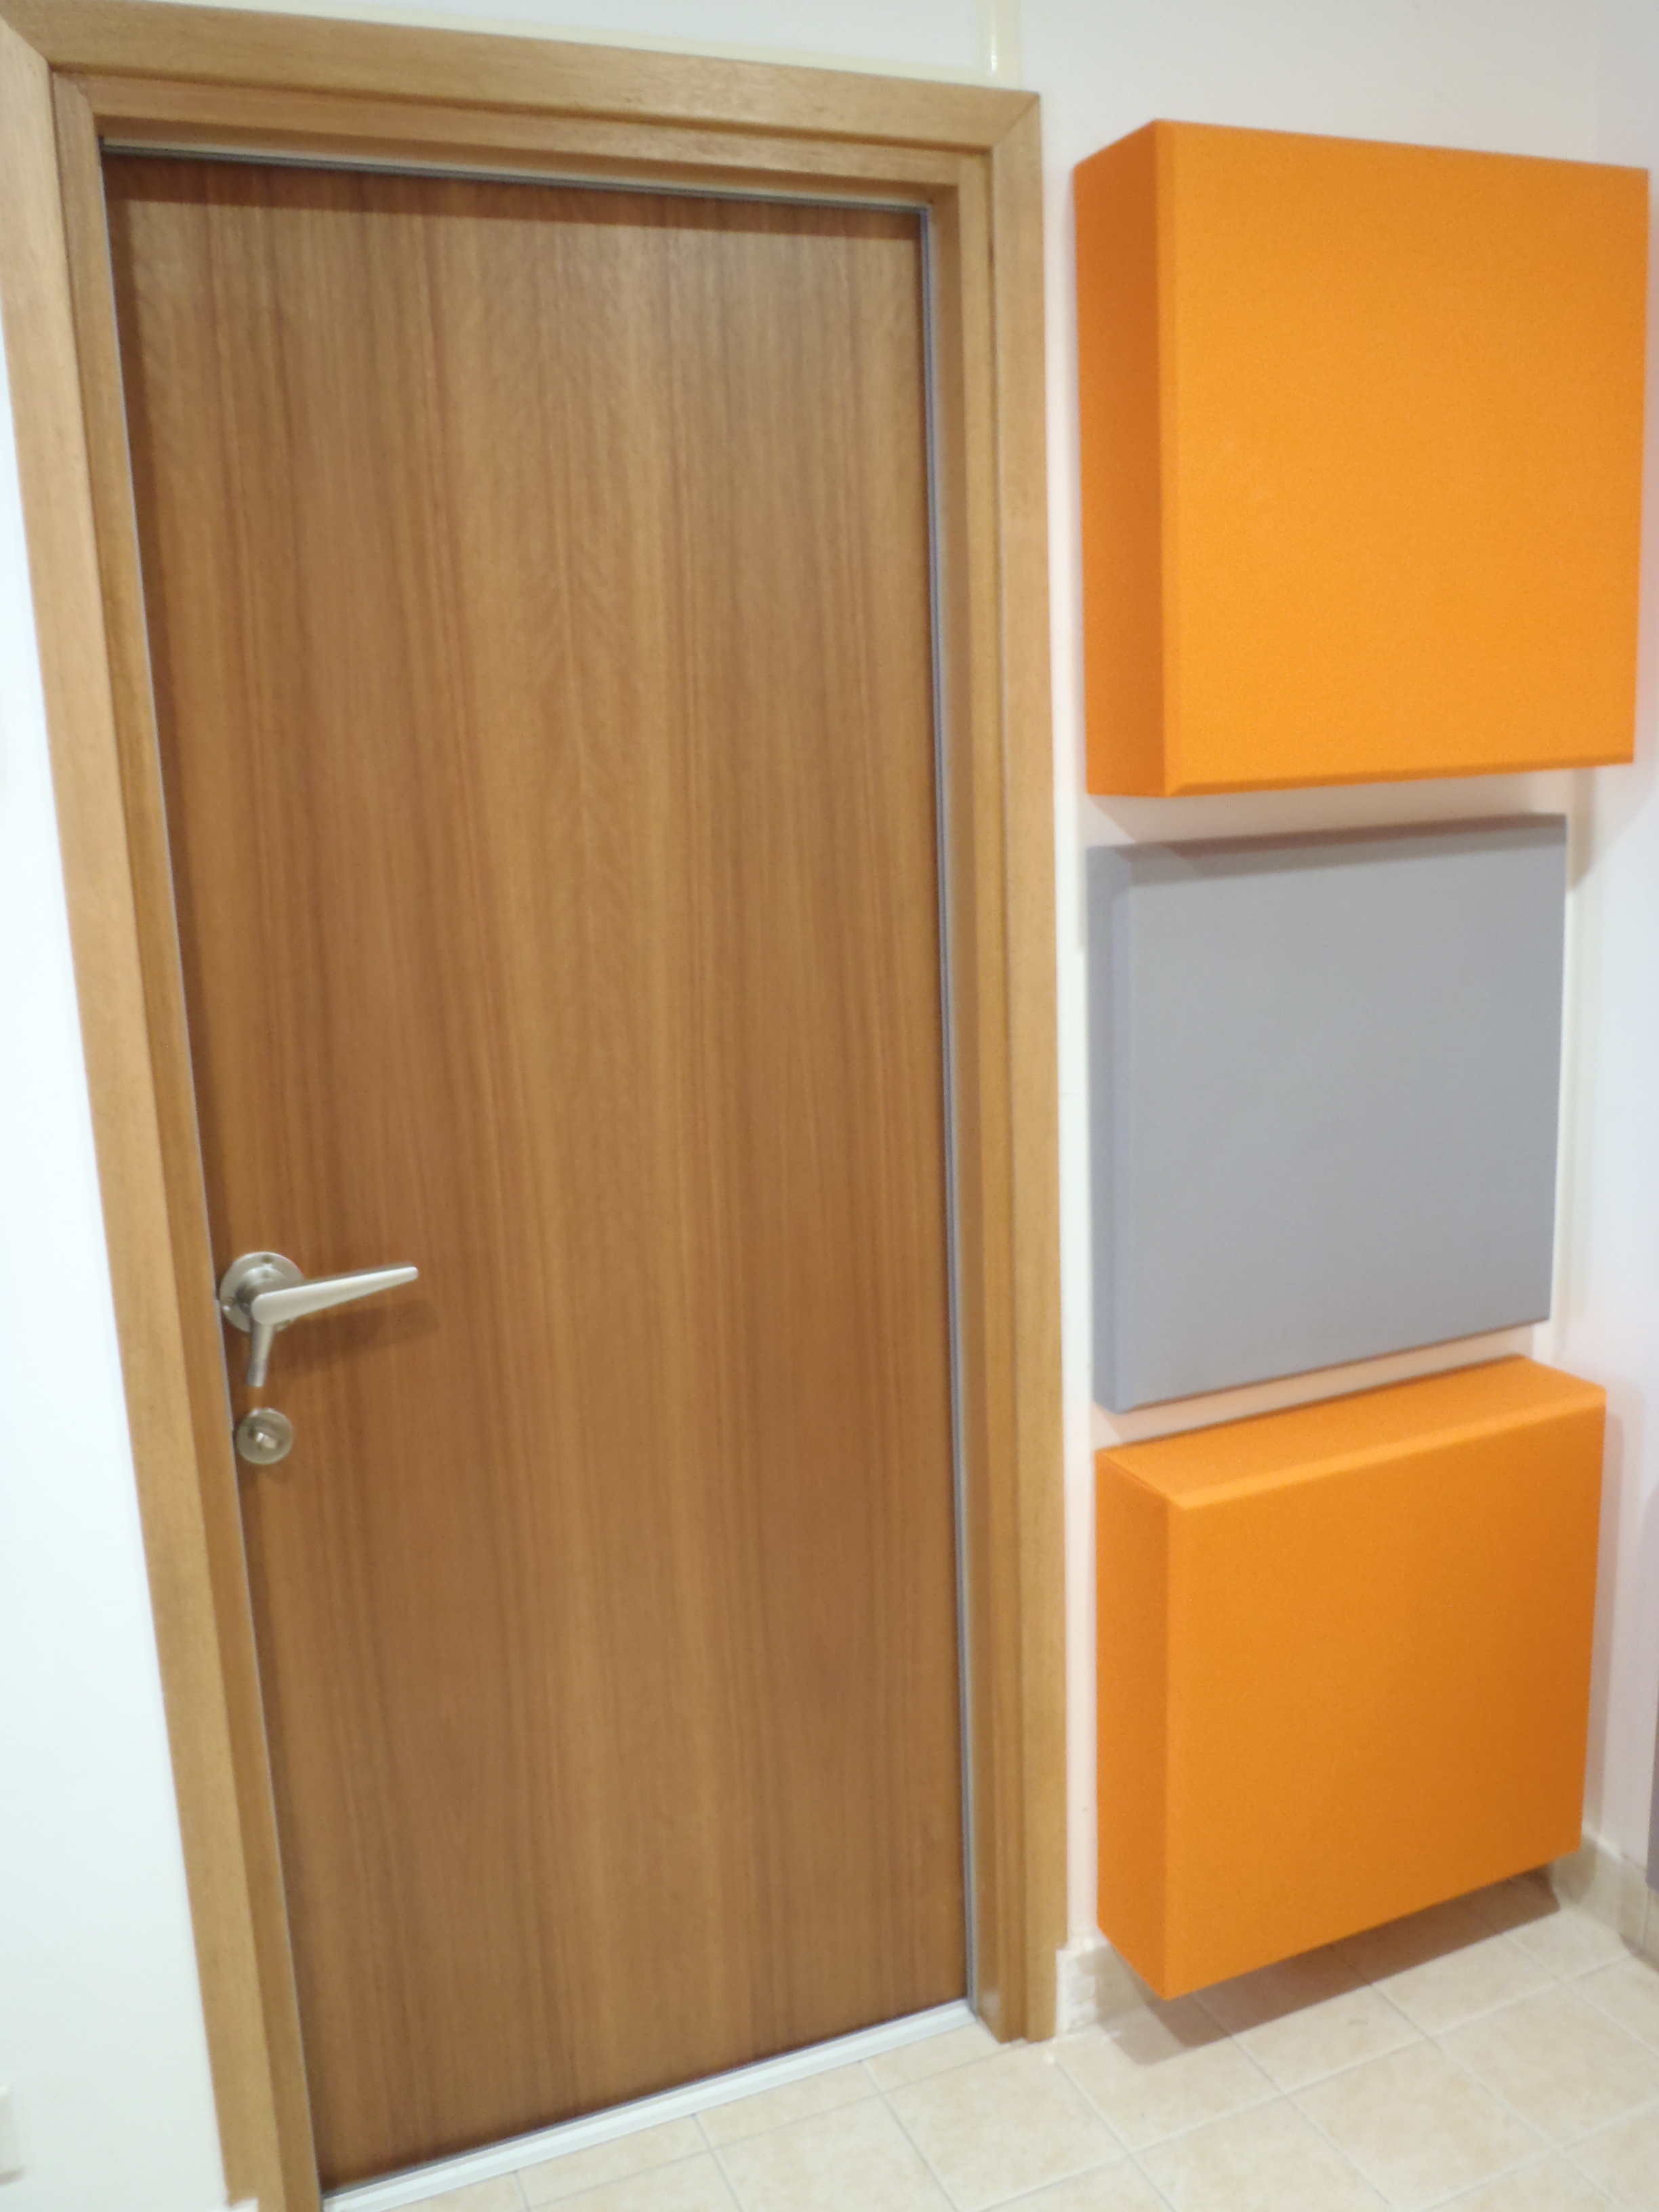 Soundproofing for doors